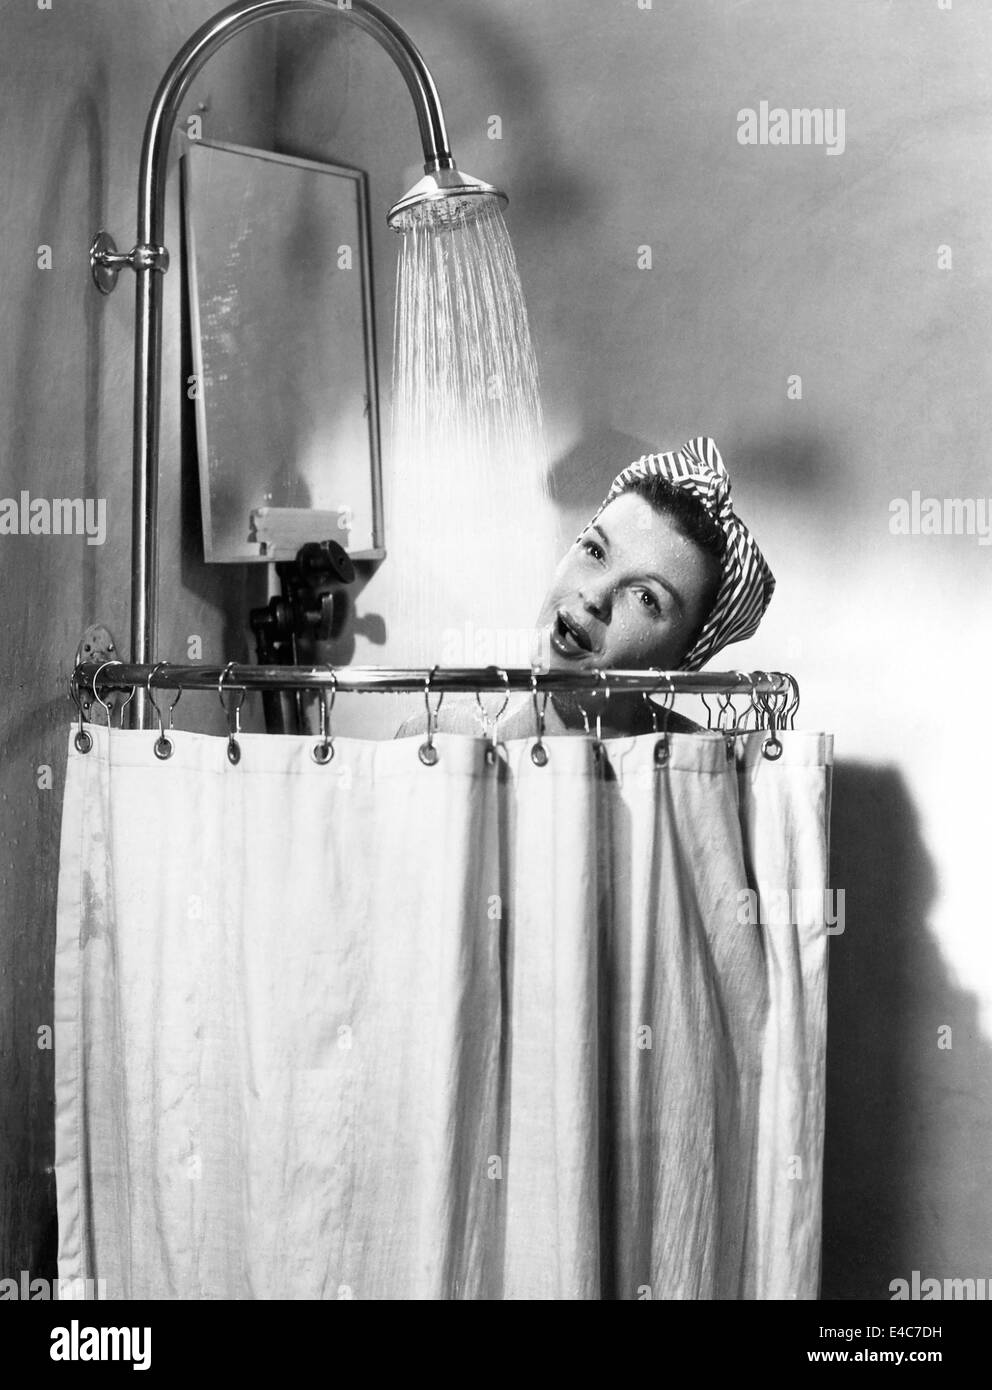 Judy Garland, on-set of the Film, Summer Stock', 1950 - Stock Image